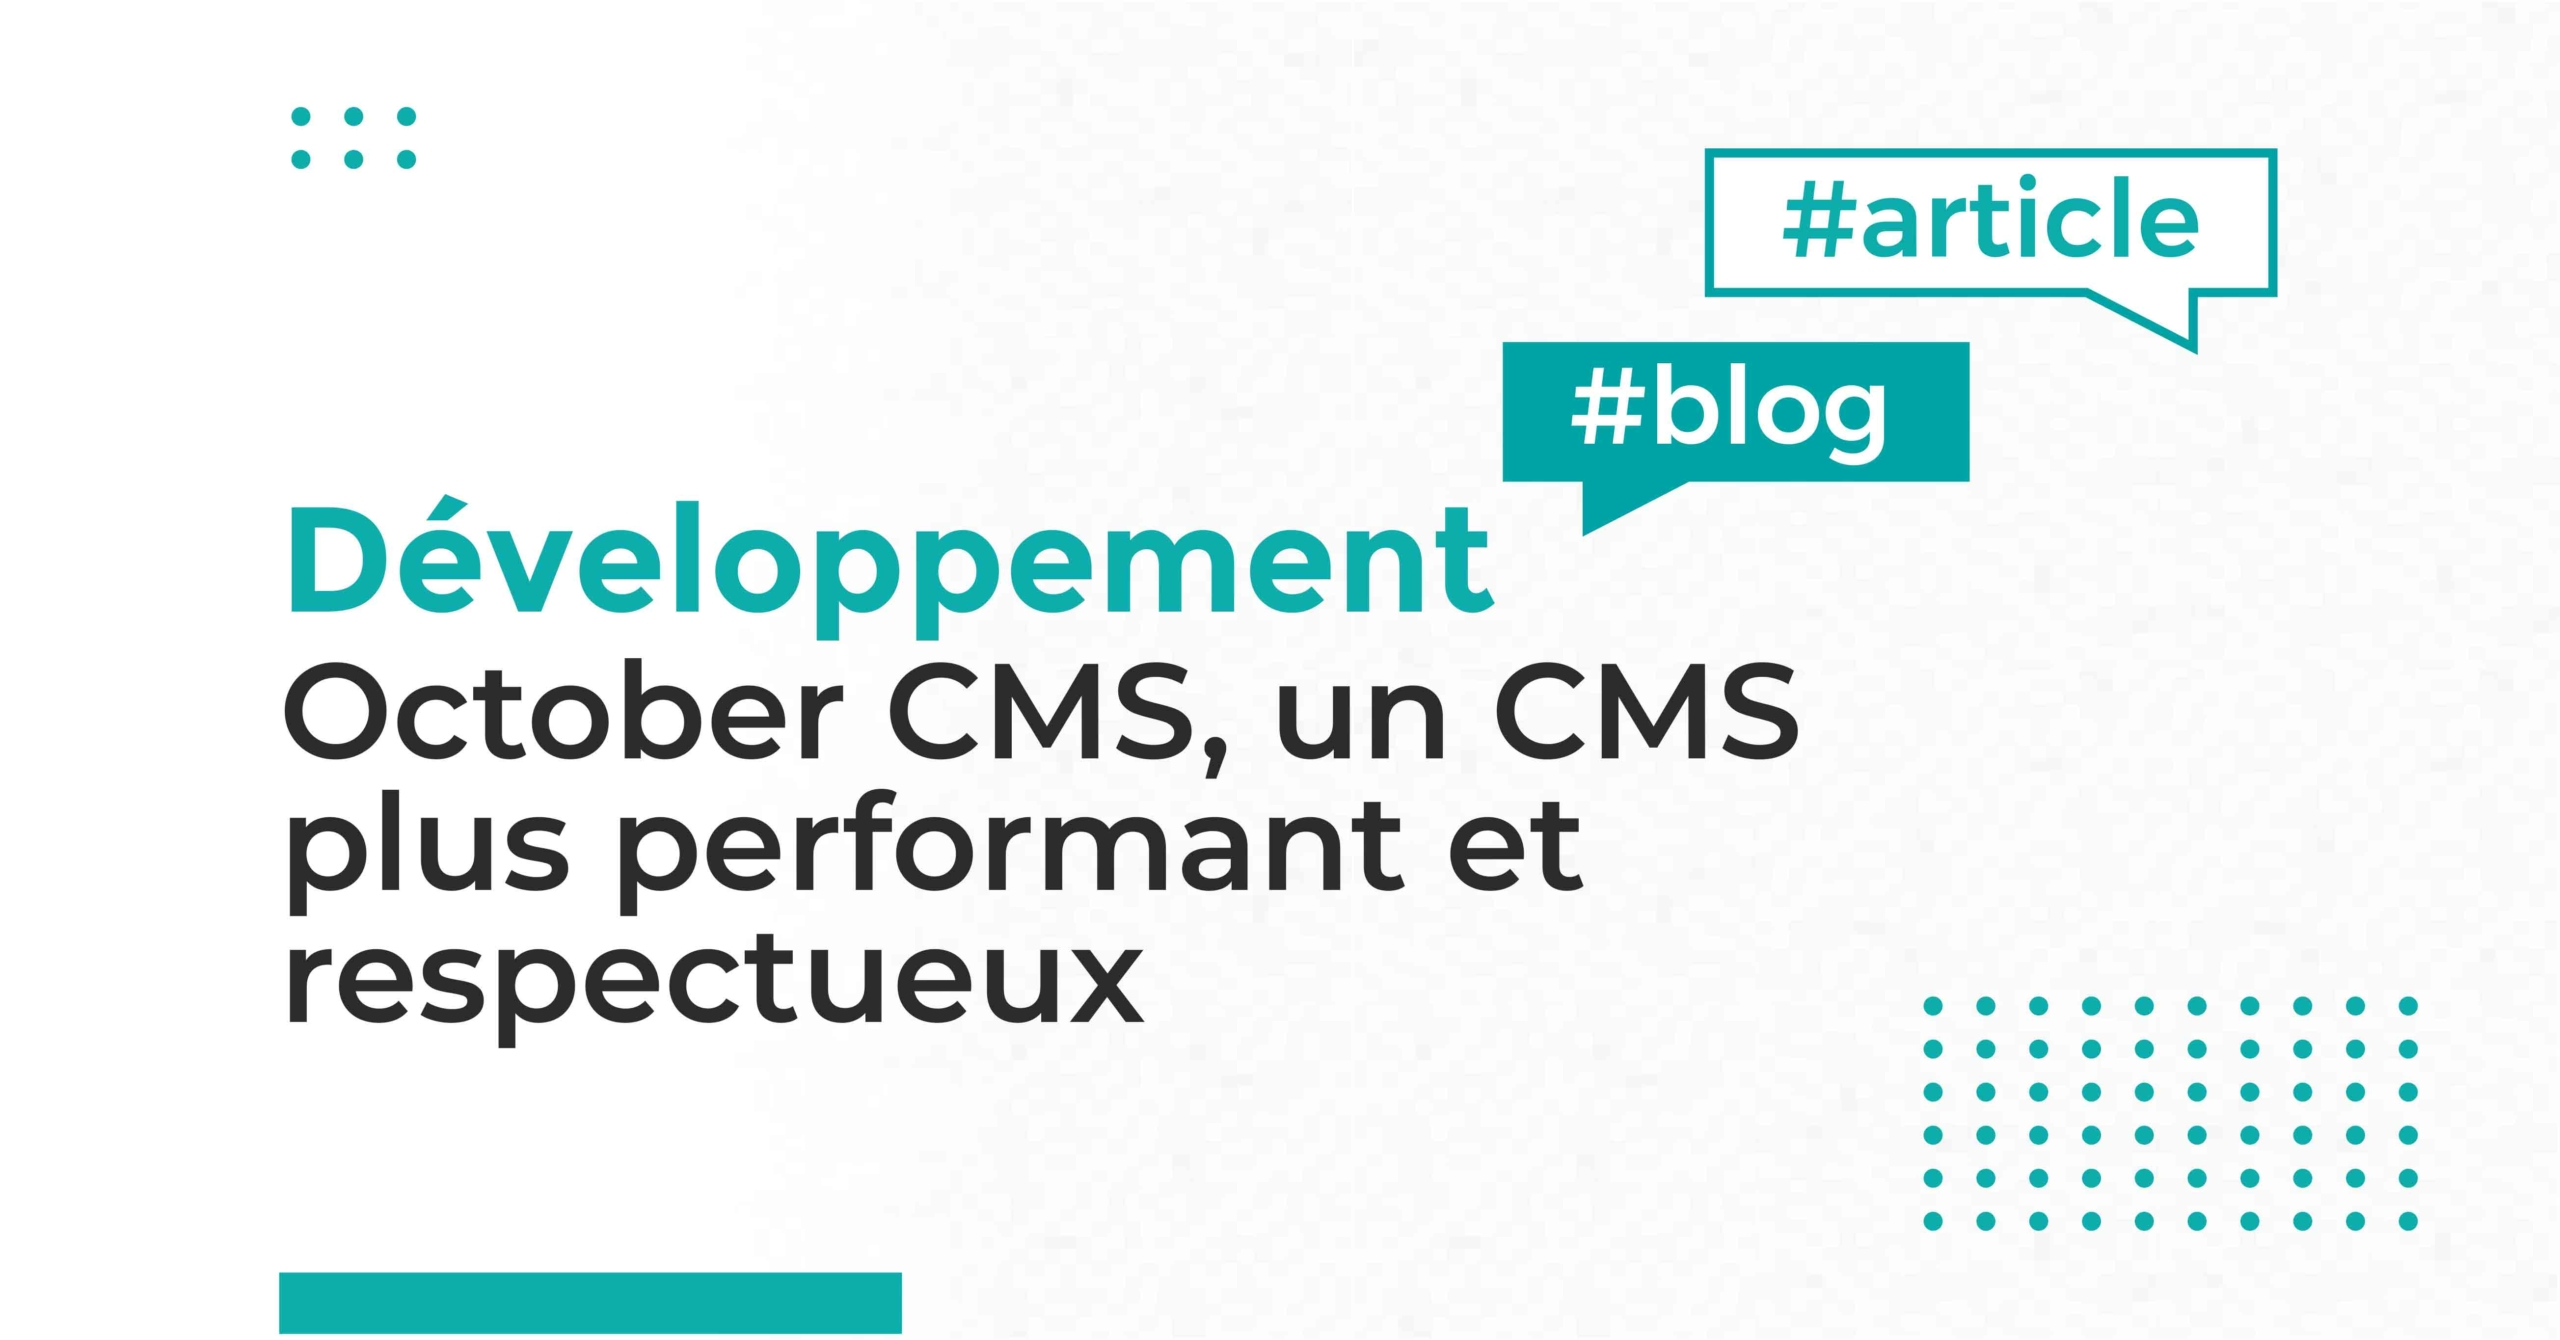 Article October CMS